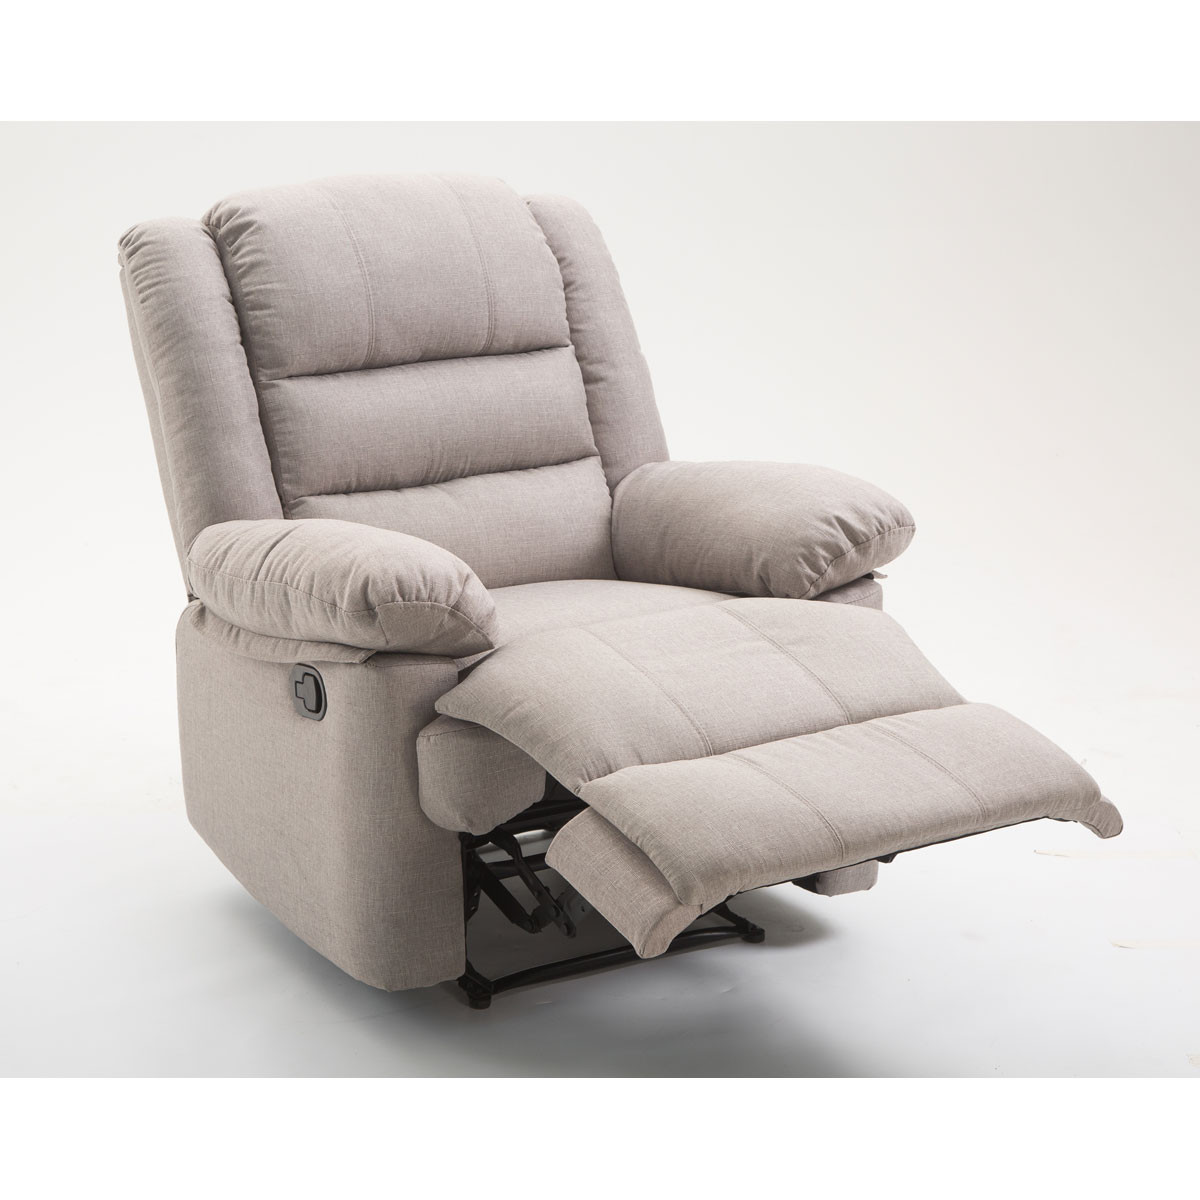 Fauteuil 1 place inclinable BORA beige